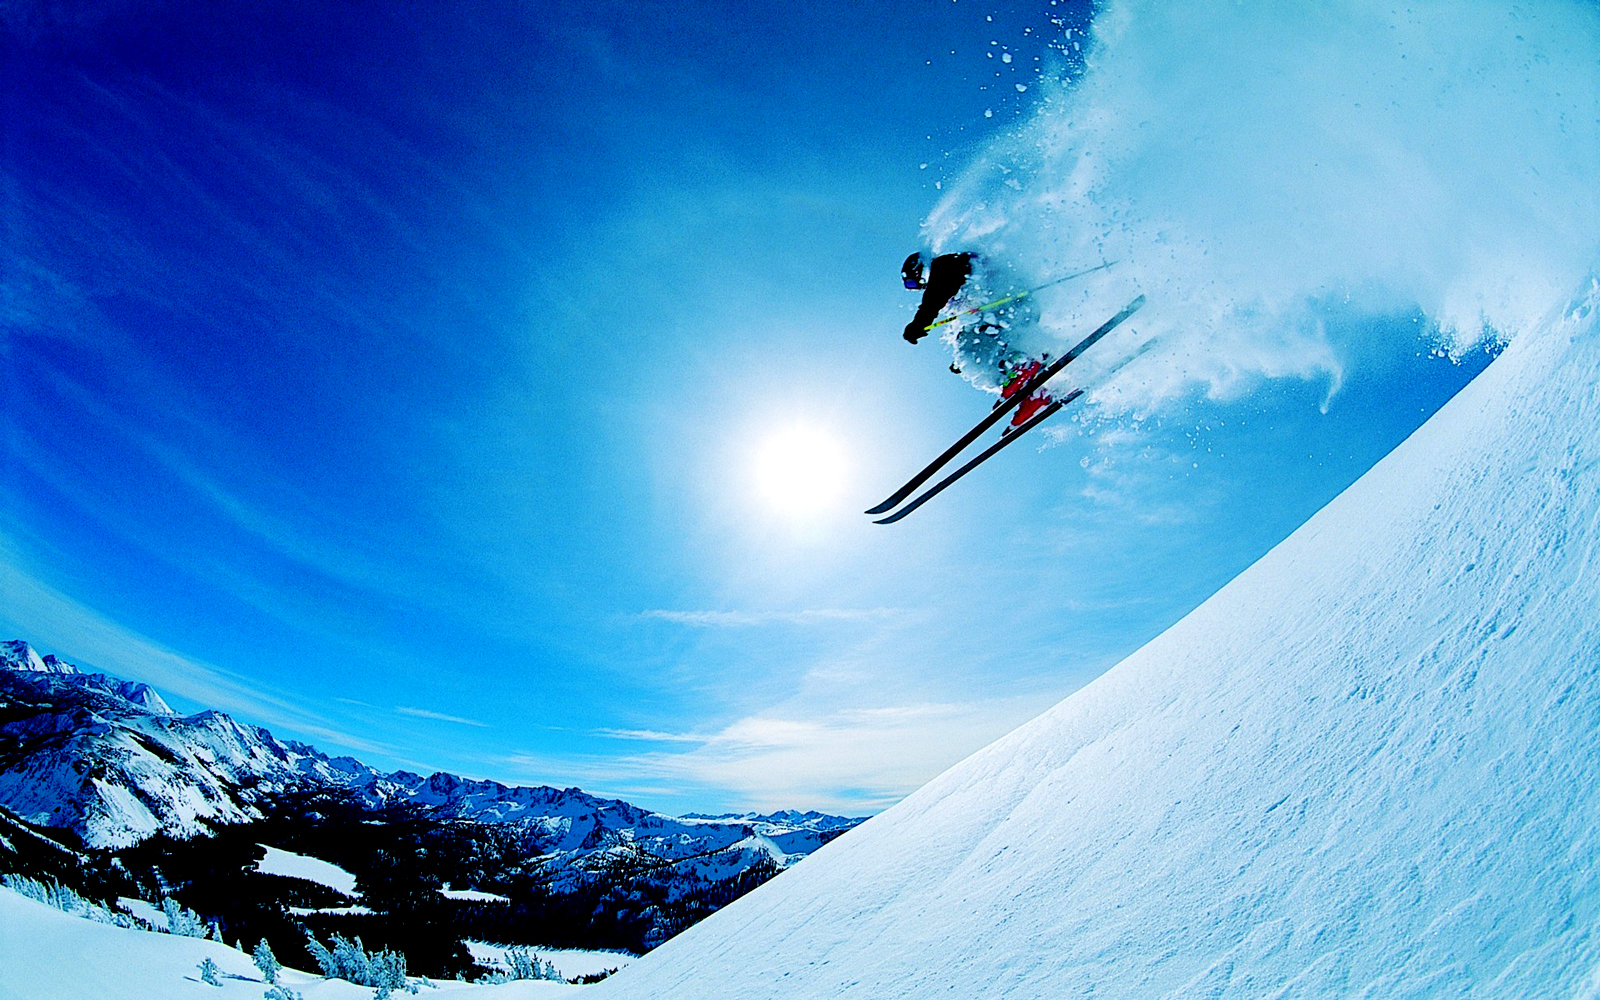 Central Wallpaper: Skiing Winter Sports HD Wallpapers